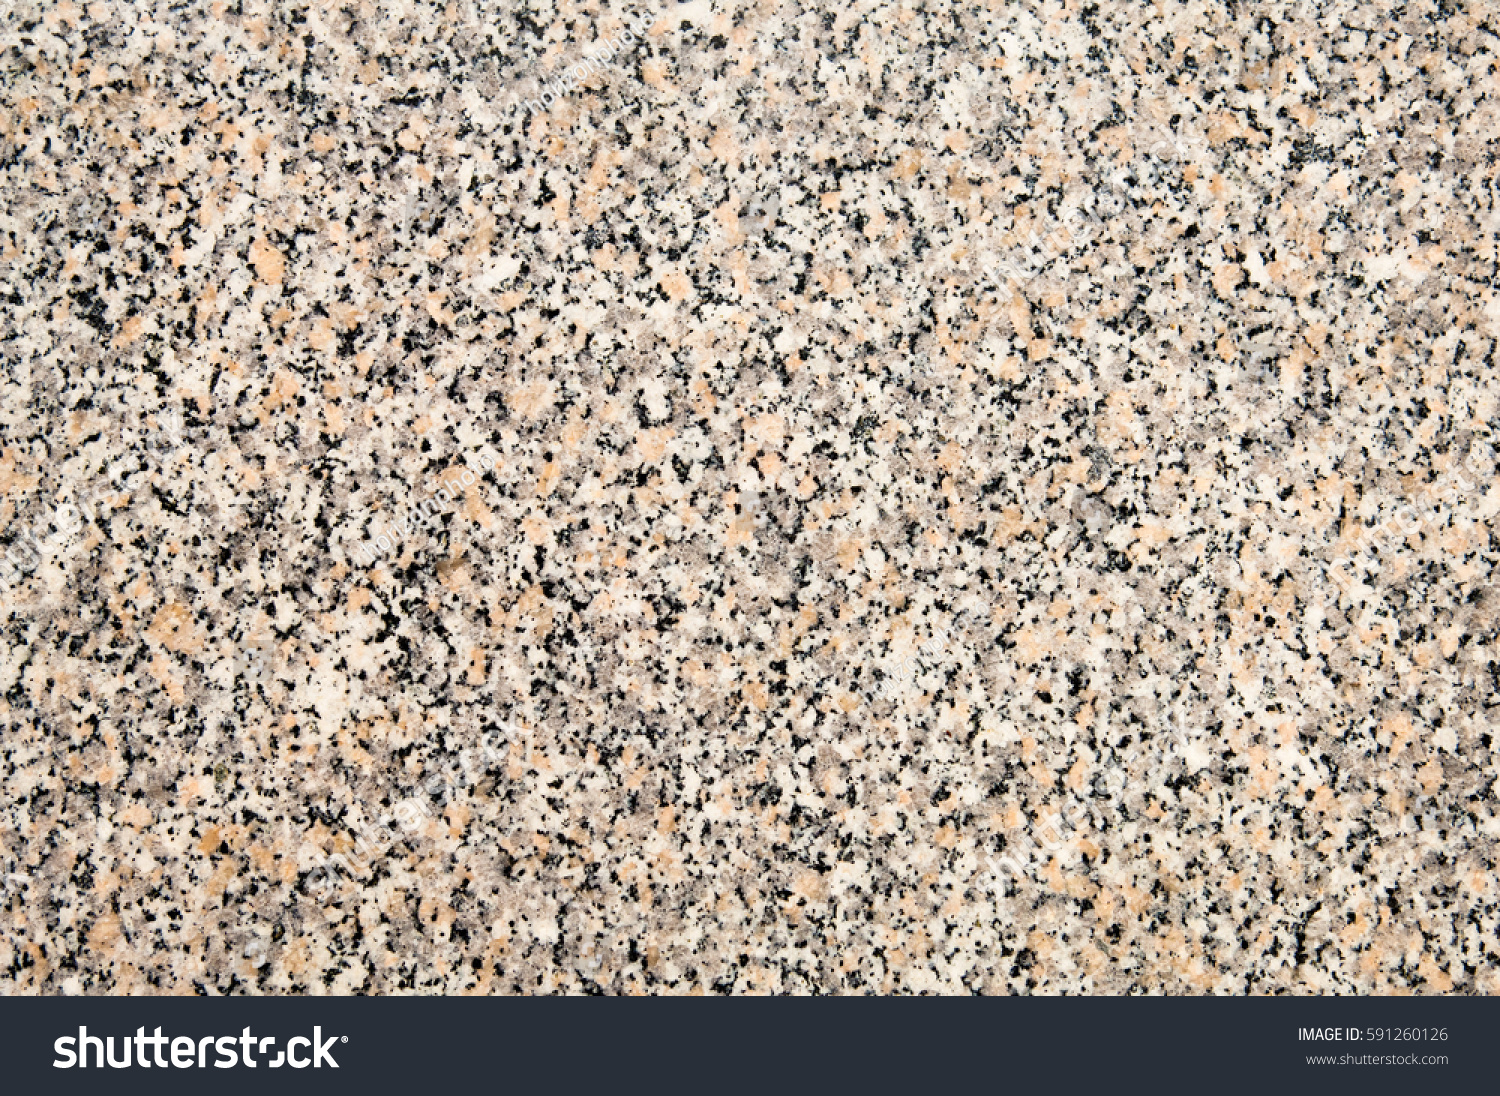 Seamless Polished Granite Textured Rock Background Stock ... Polished Granite Texture Seamless